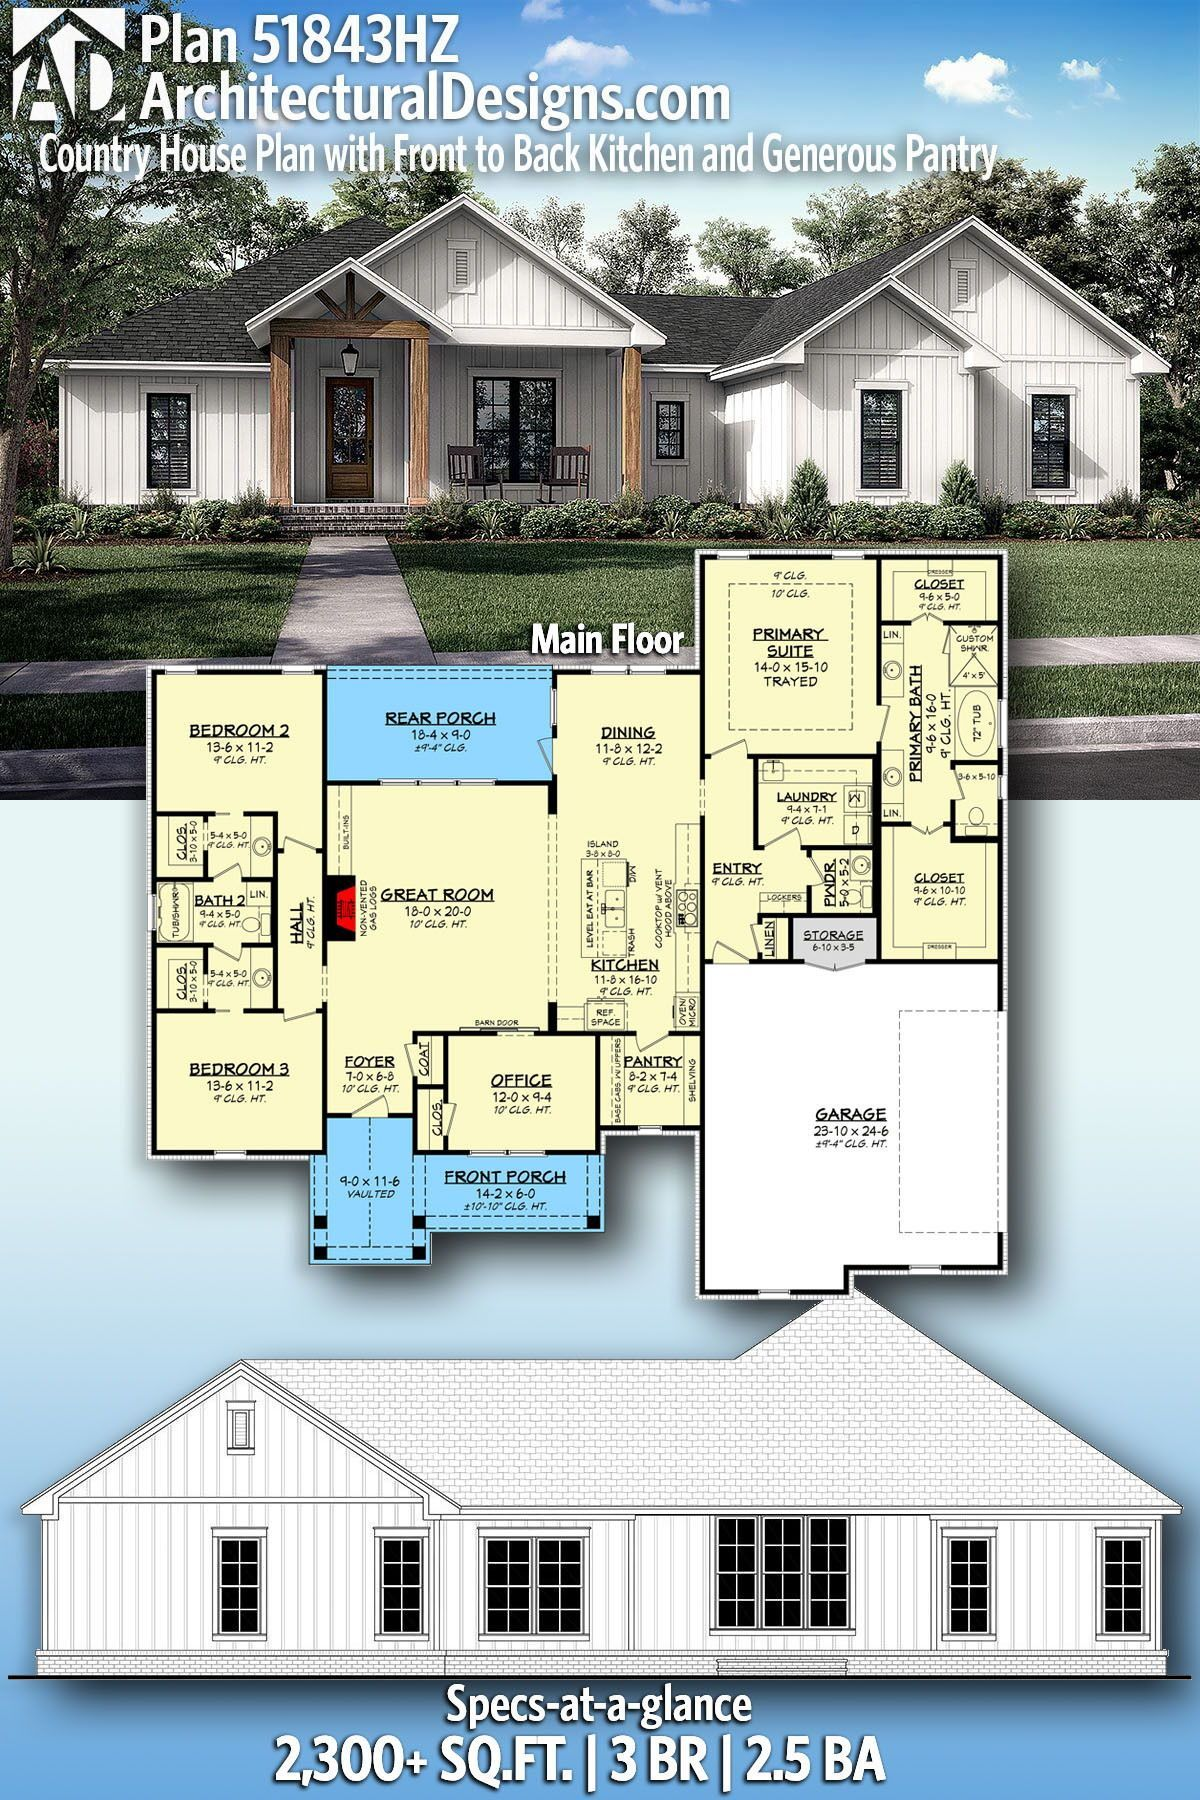 Plan 51843hz Country House Plan With Front To Back Kitchen And Generous Pantry House Plans Farmhouse Country House Plan Craftsman House Plans